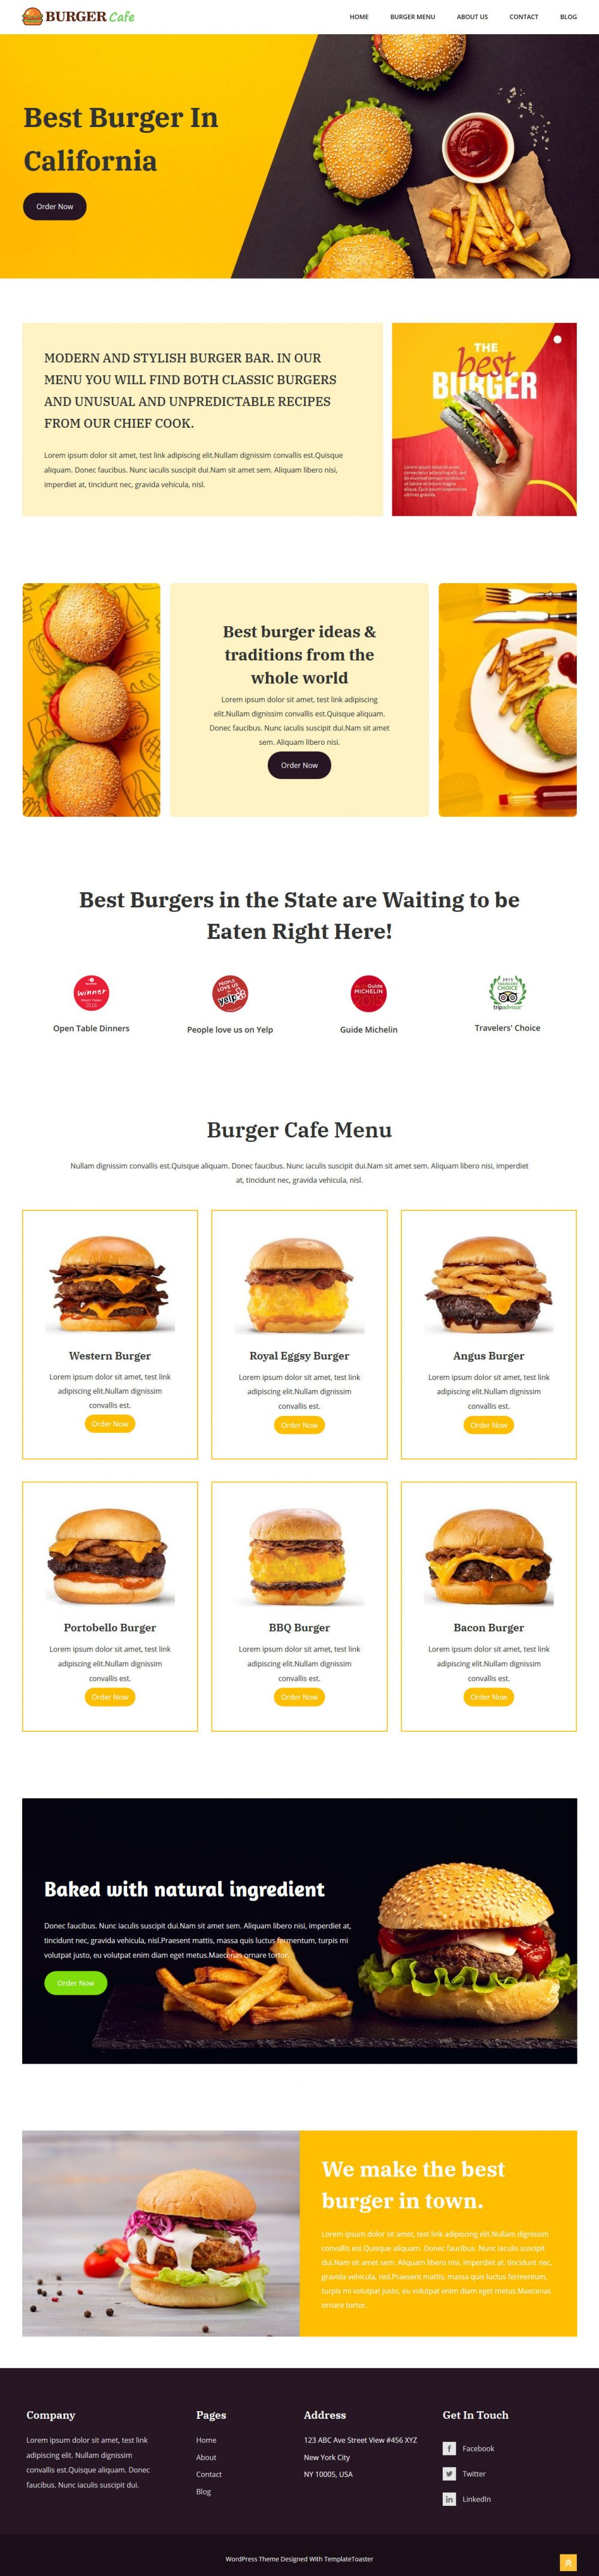 Burger Cafe restaurant wordpress theme